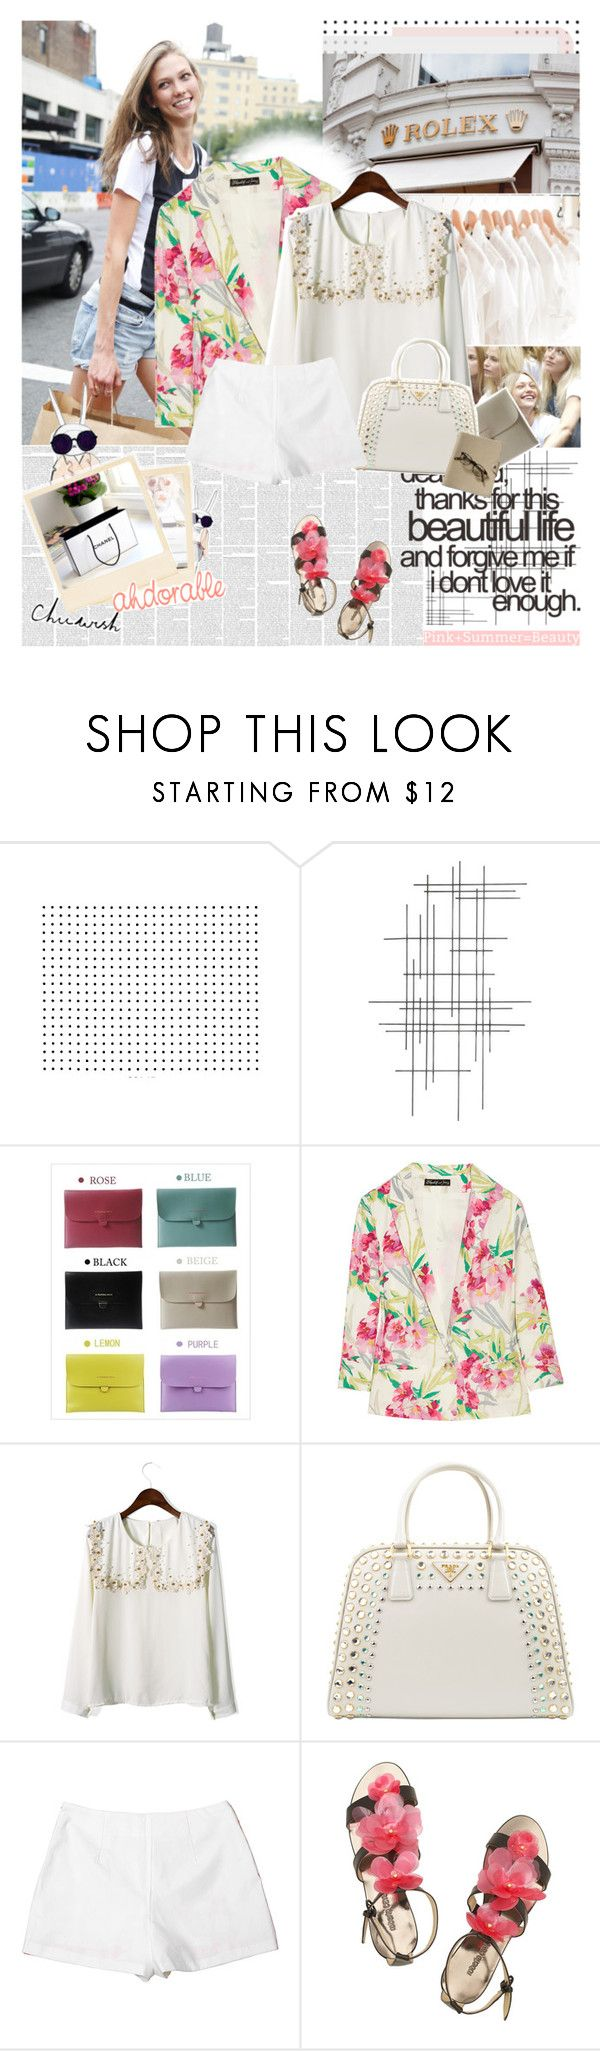 """""""now my life is sweet like cinnamon"""" by hug-voldemort ❤ liked on Polyvore featuring Crate and Barrel, Tiffany & Co., Elizabeth and James, Prada, Roberto Cavalli, Chicwish, studded handbags, lace, high-waisted shorts and flower sandals"""